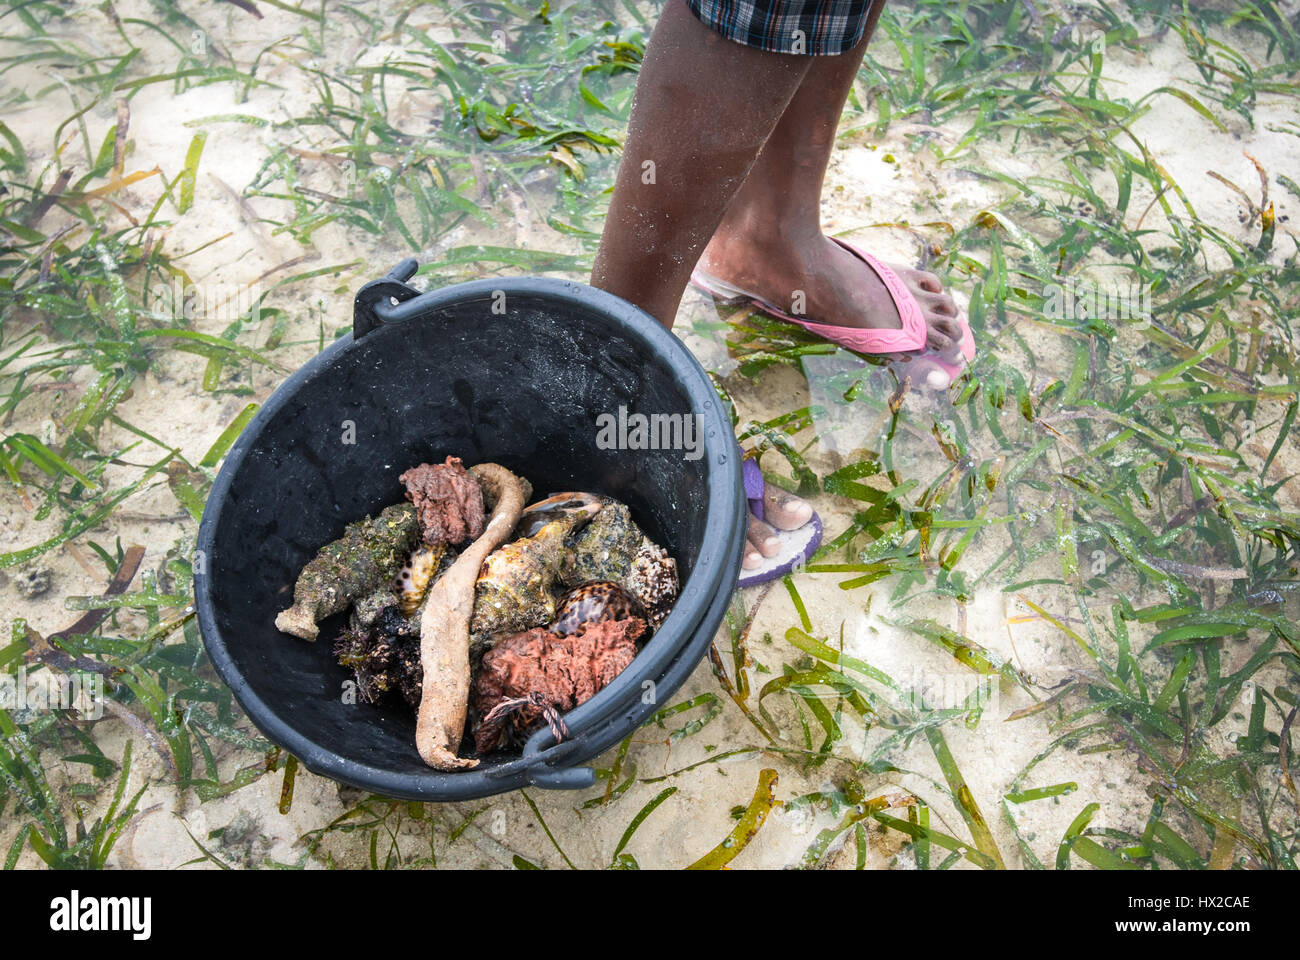 A little girl showing a bucket containing marine products collected at seagrass bed during low tide in Raja Ampat, - Stock Image